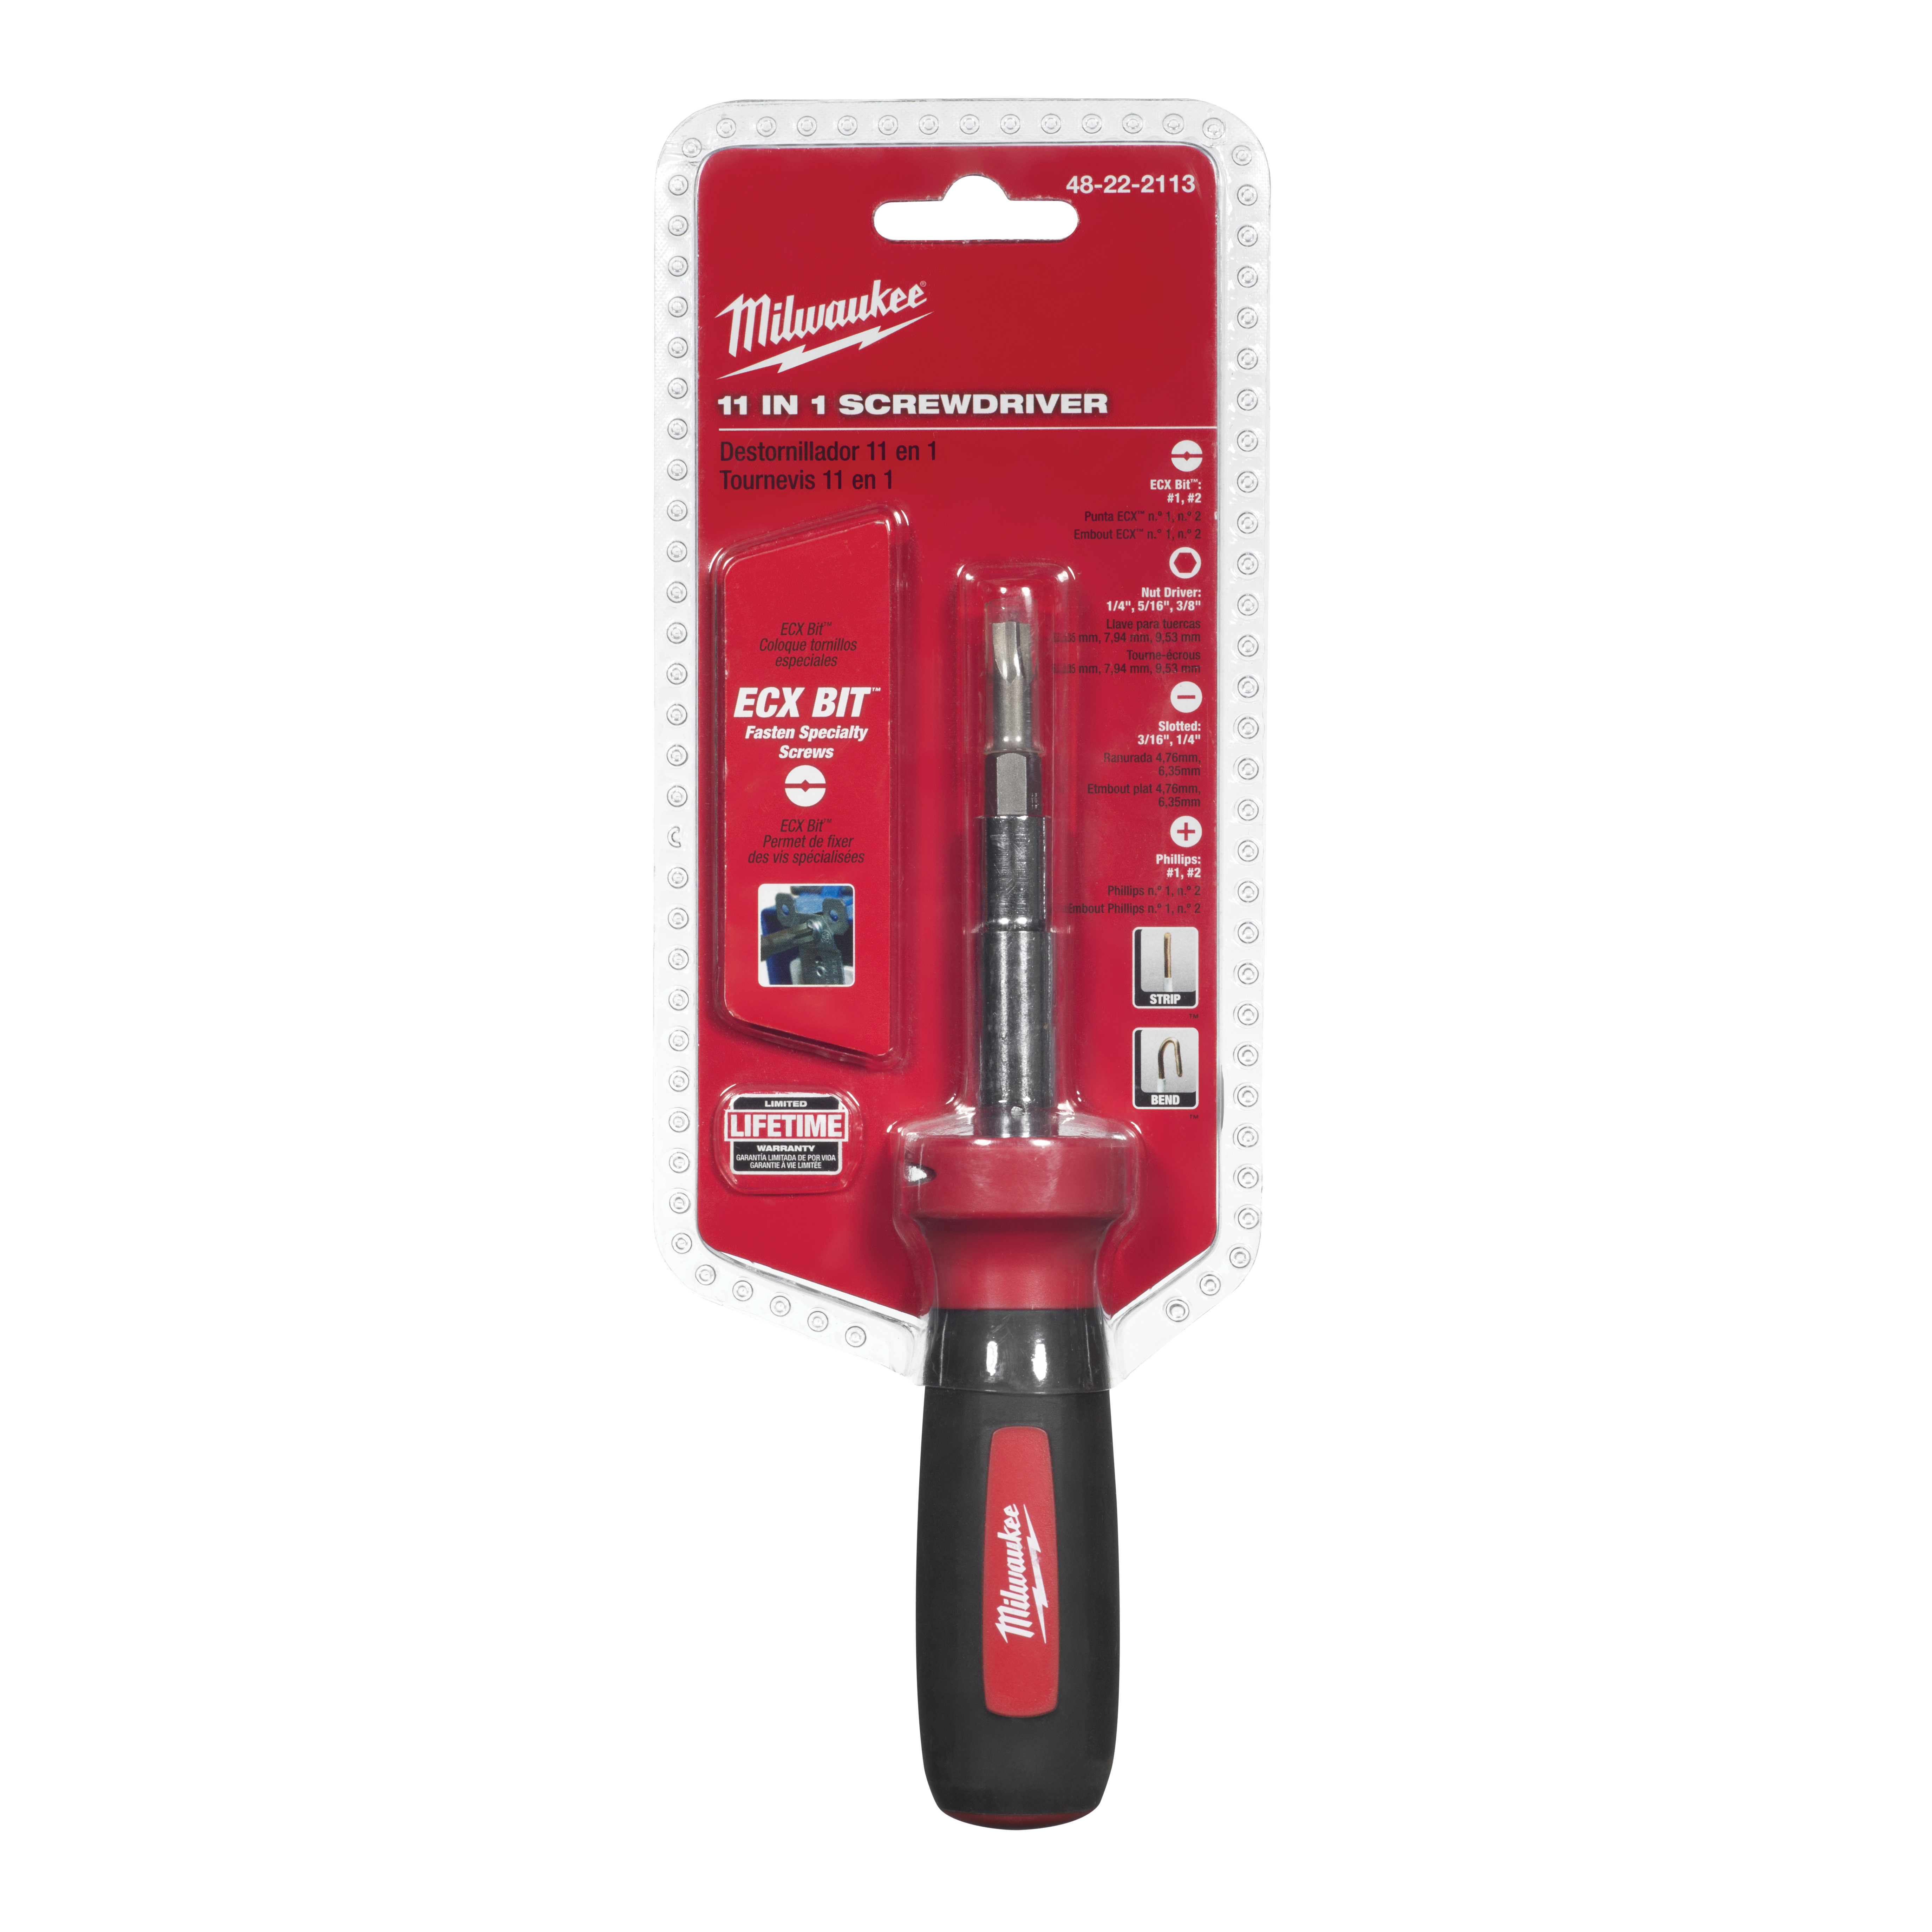 Picture of Milwaukee 48-22-2760 Screwdriver, Rubber Handle